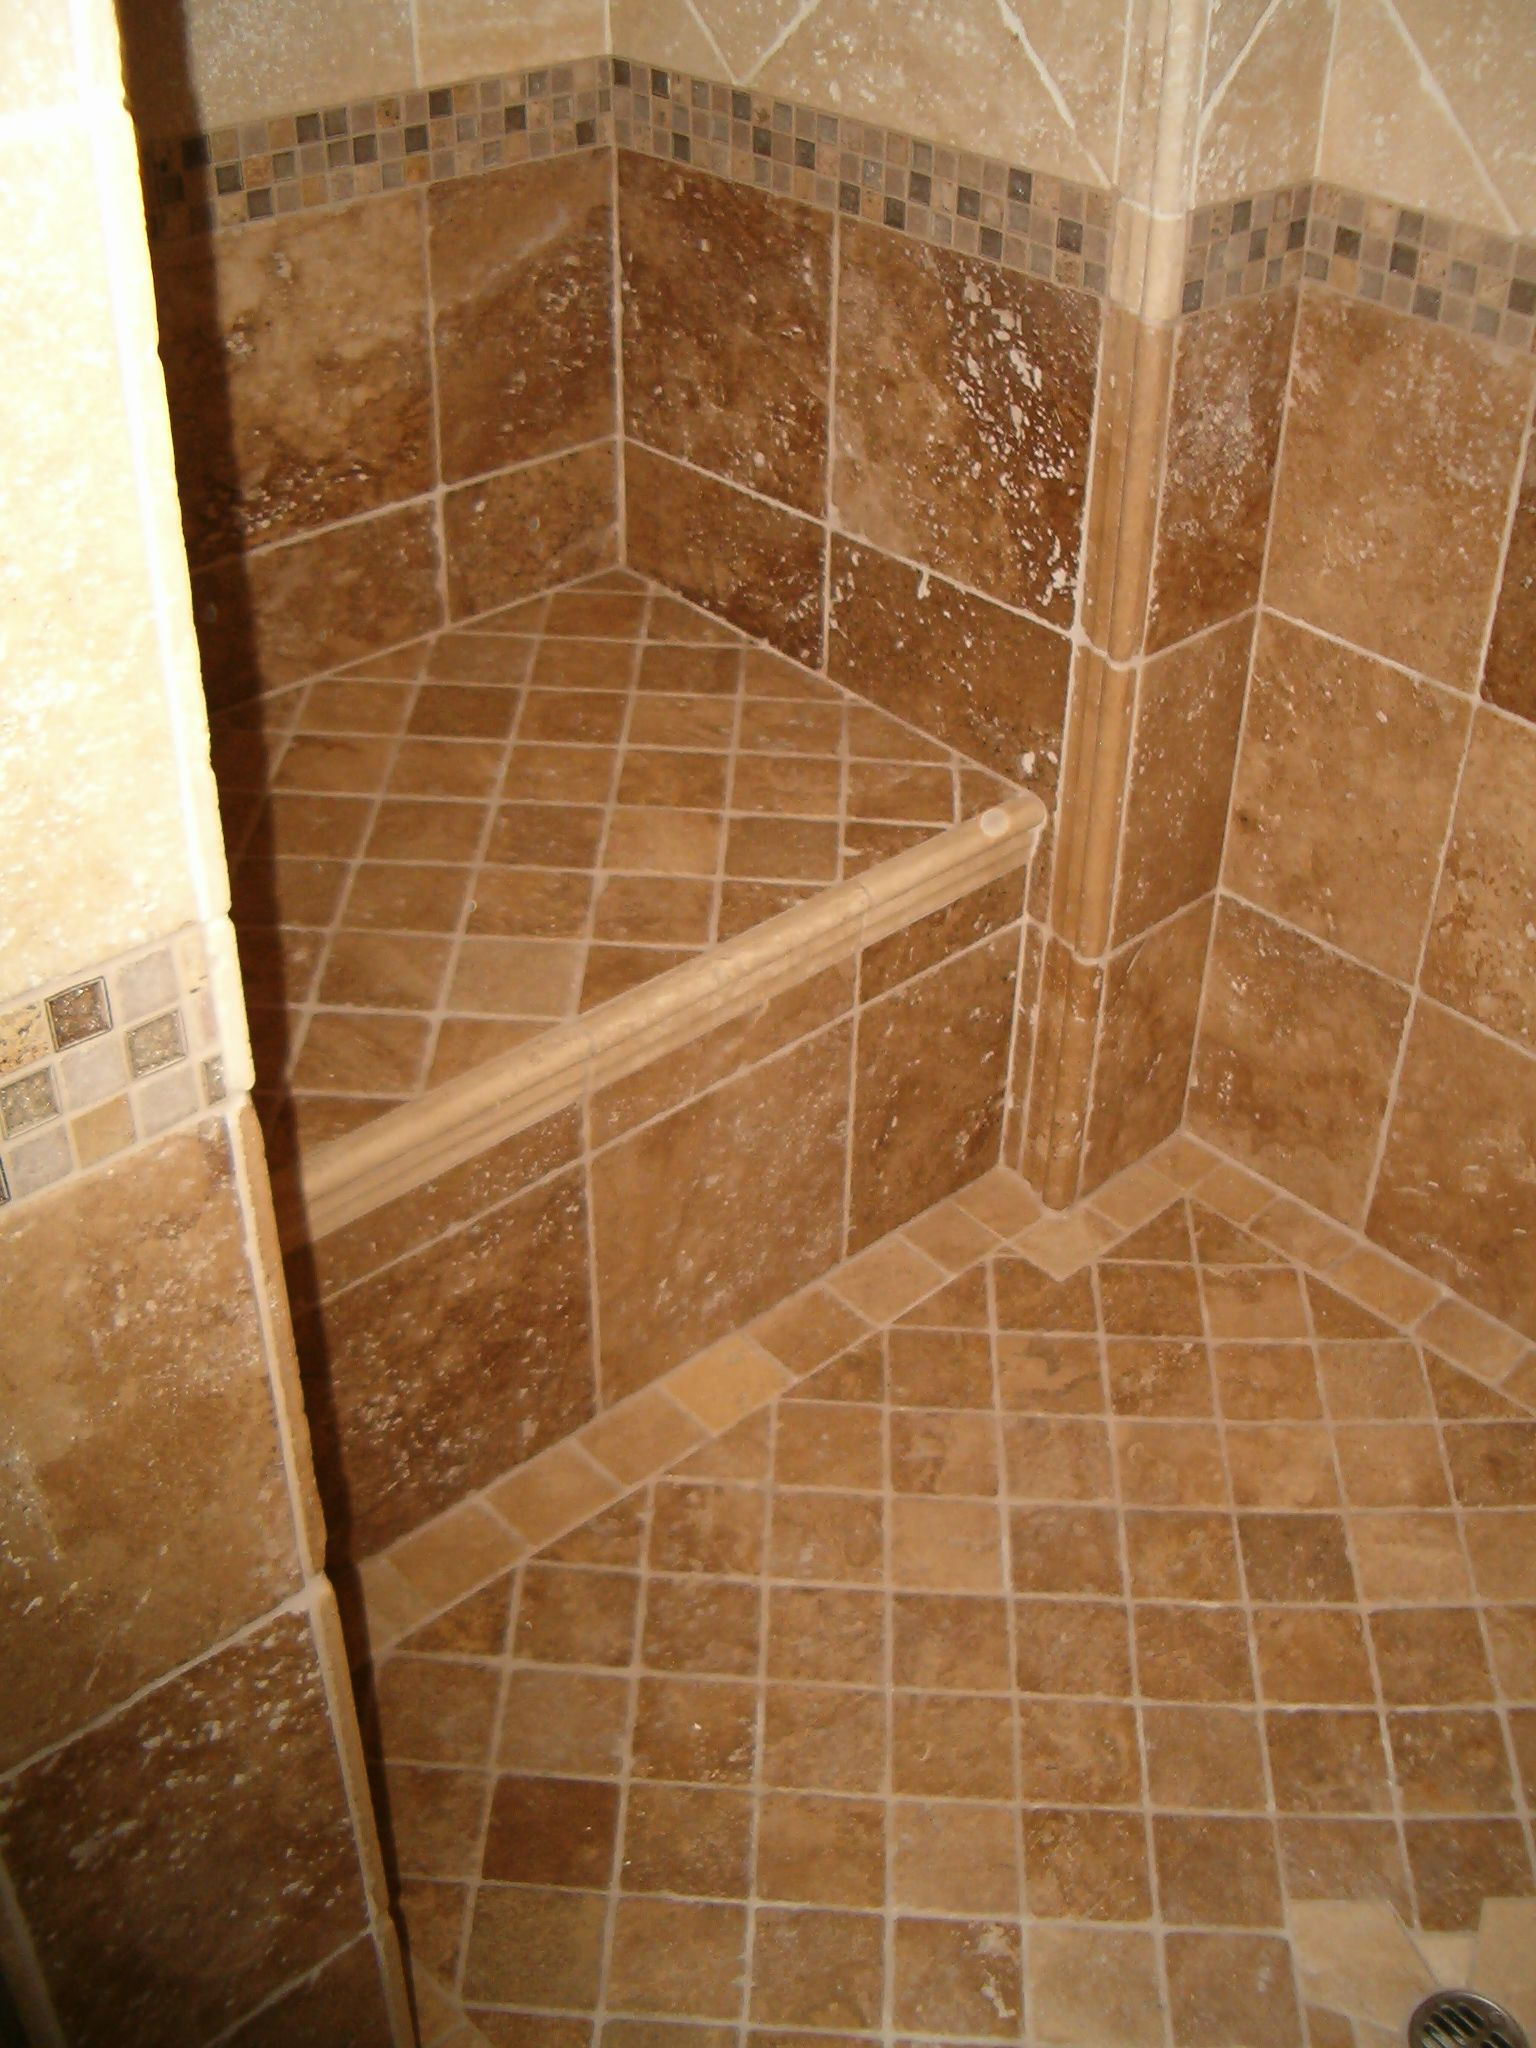 pictures of tile showers also slope towards the shower floor - Walk In Shower Tile Design Ideas